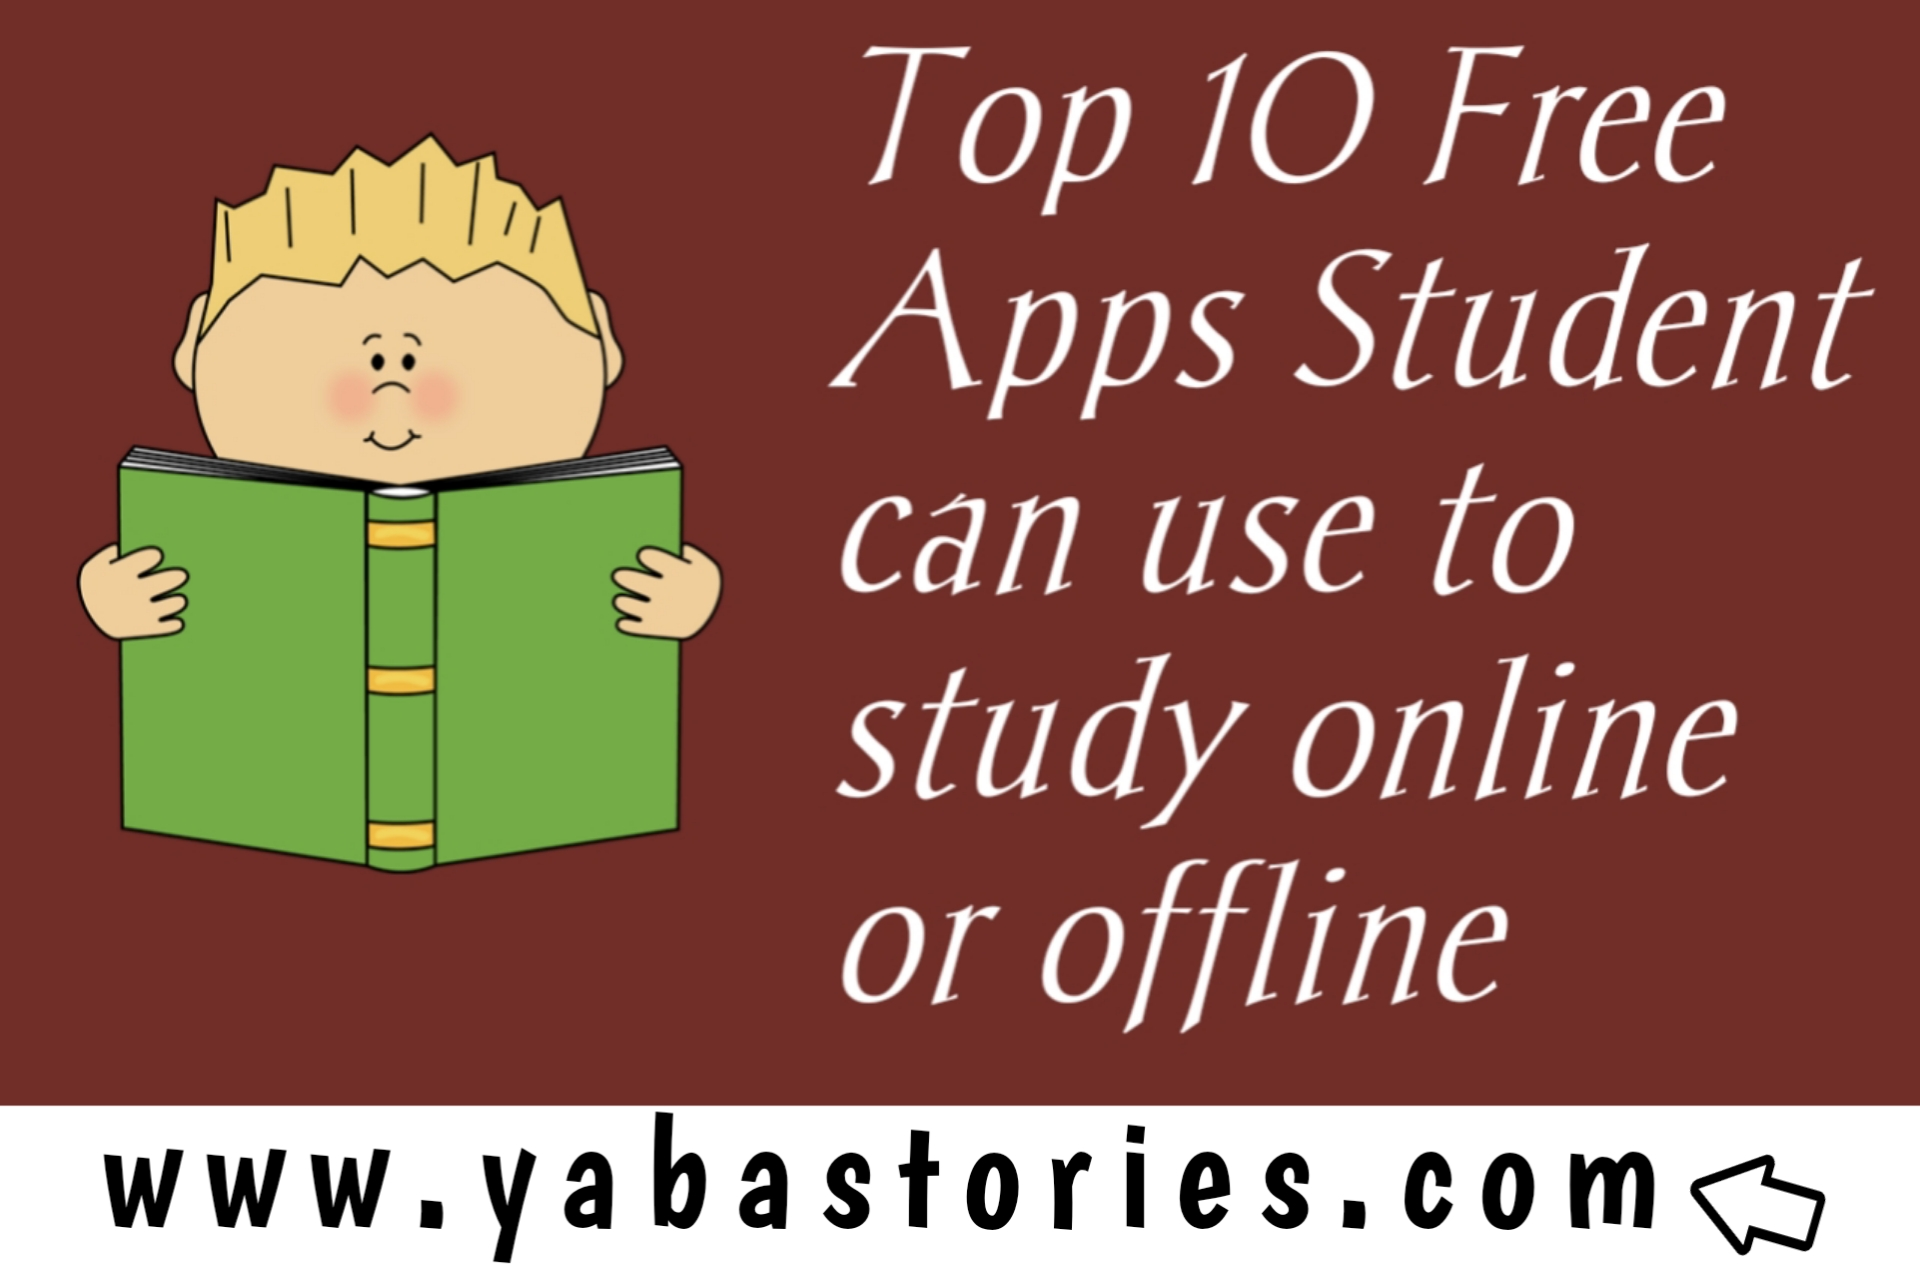 Free App to Study As Student